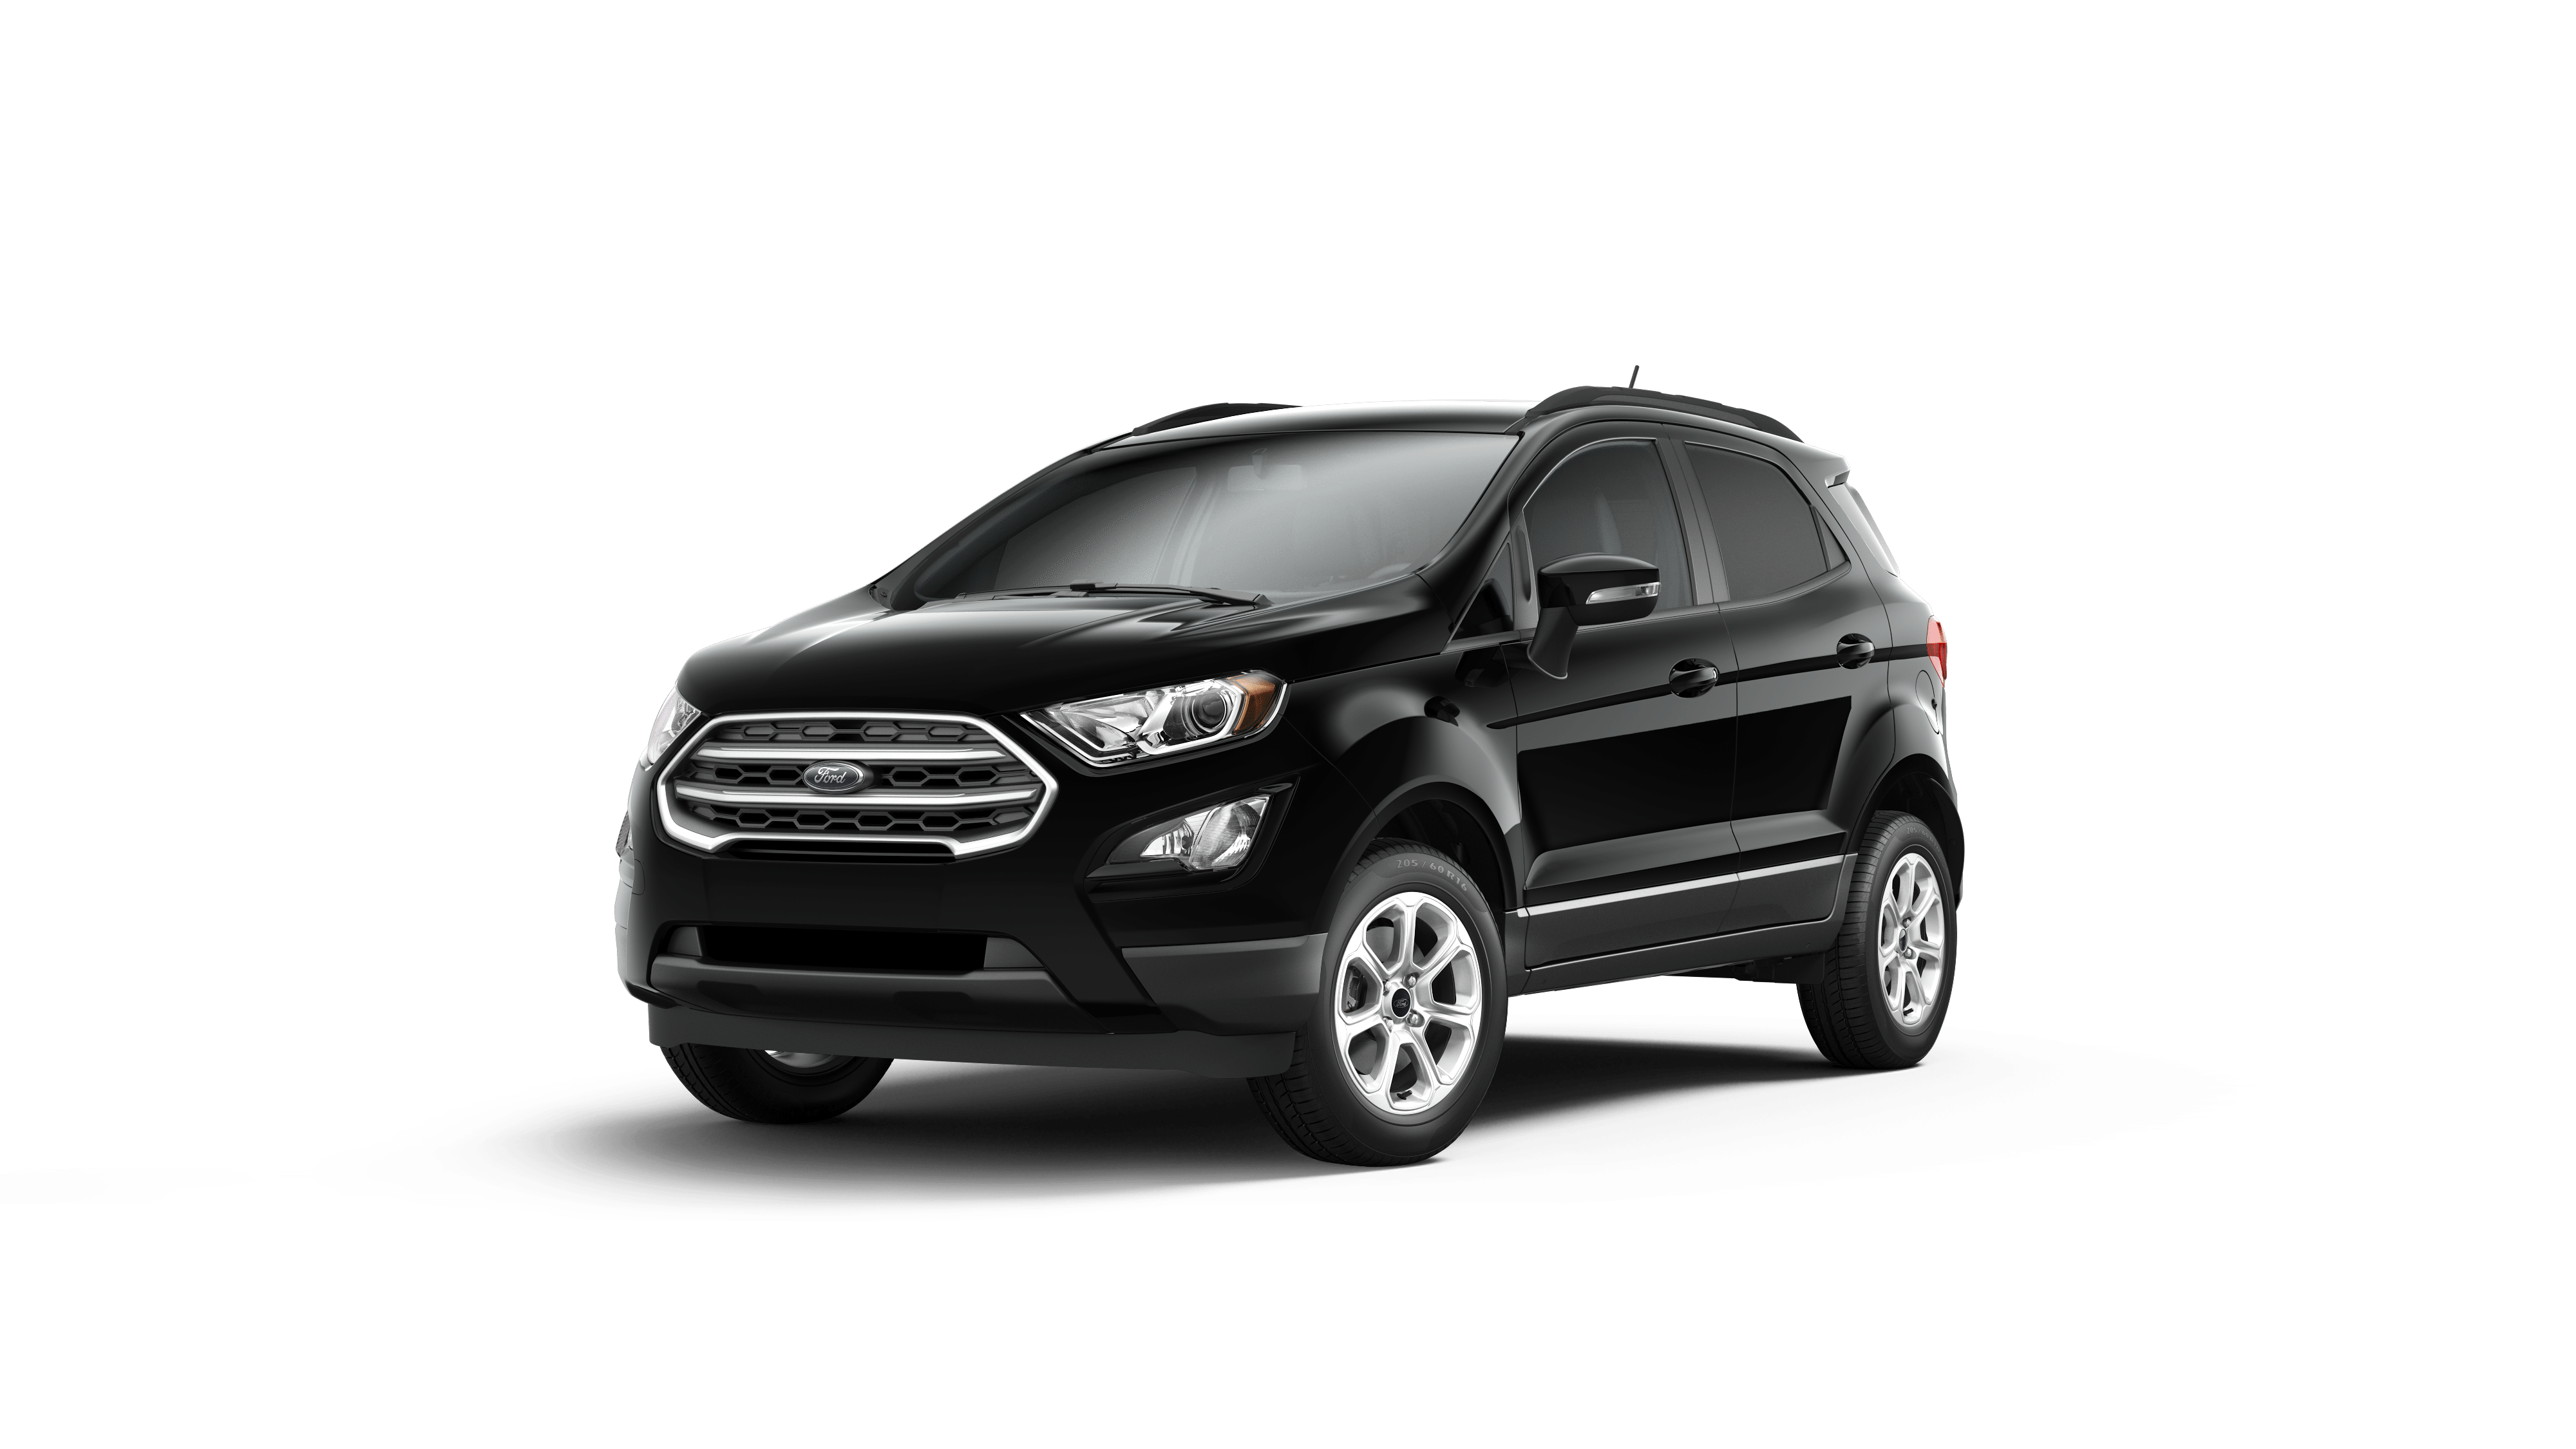 New Ford EcoSport Vehicles for Sale in Quakertown, near Coopersburg, PA